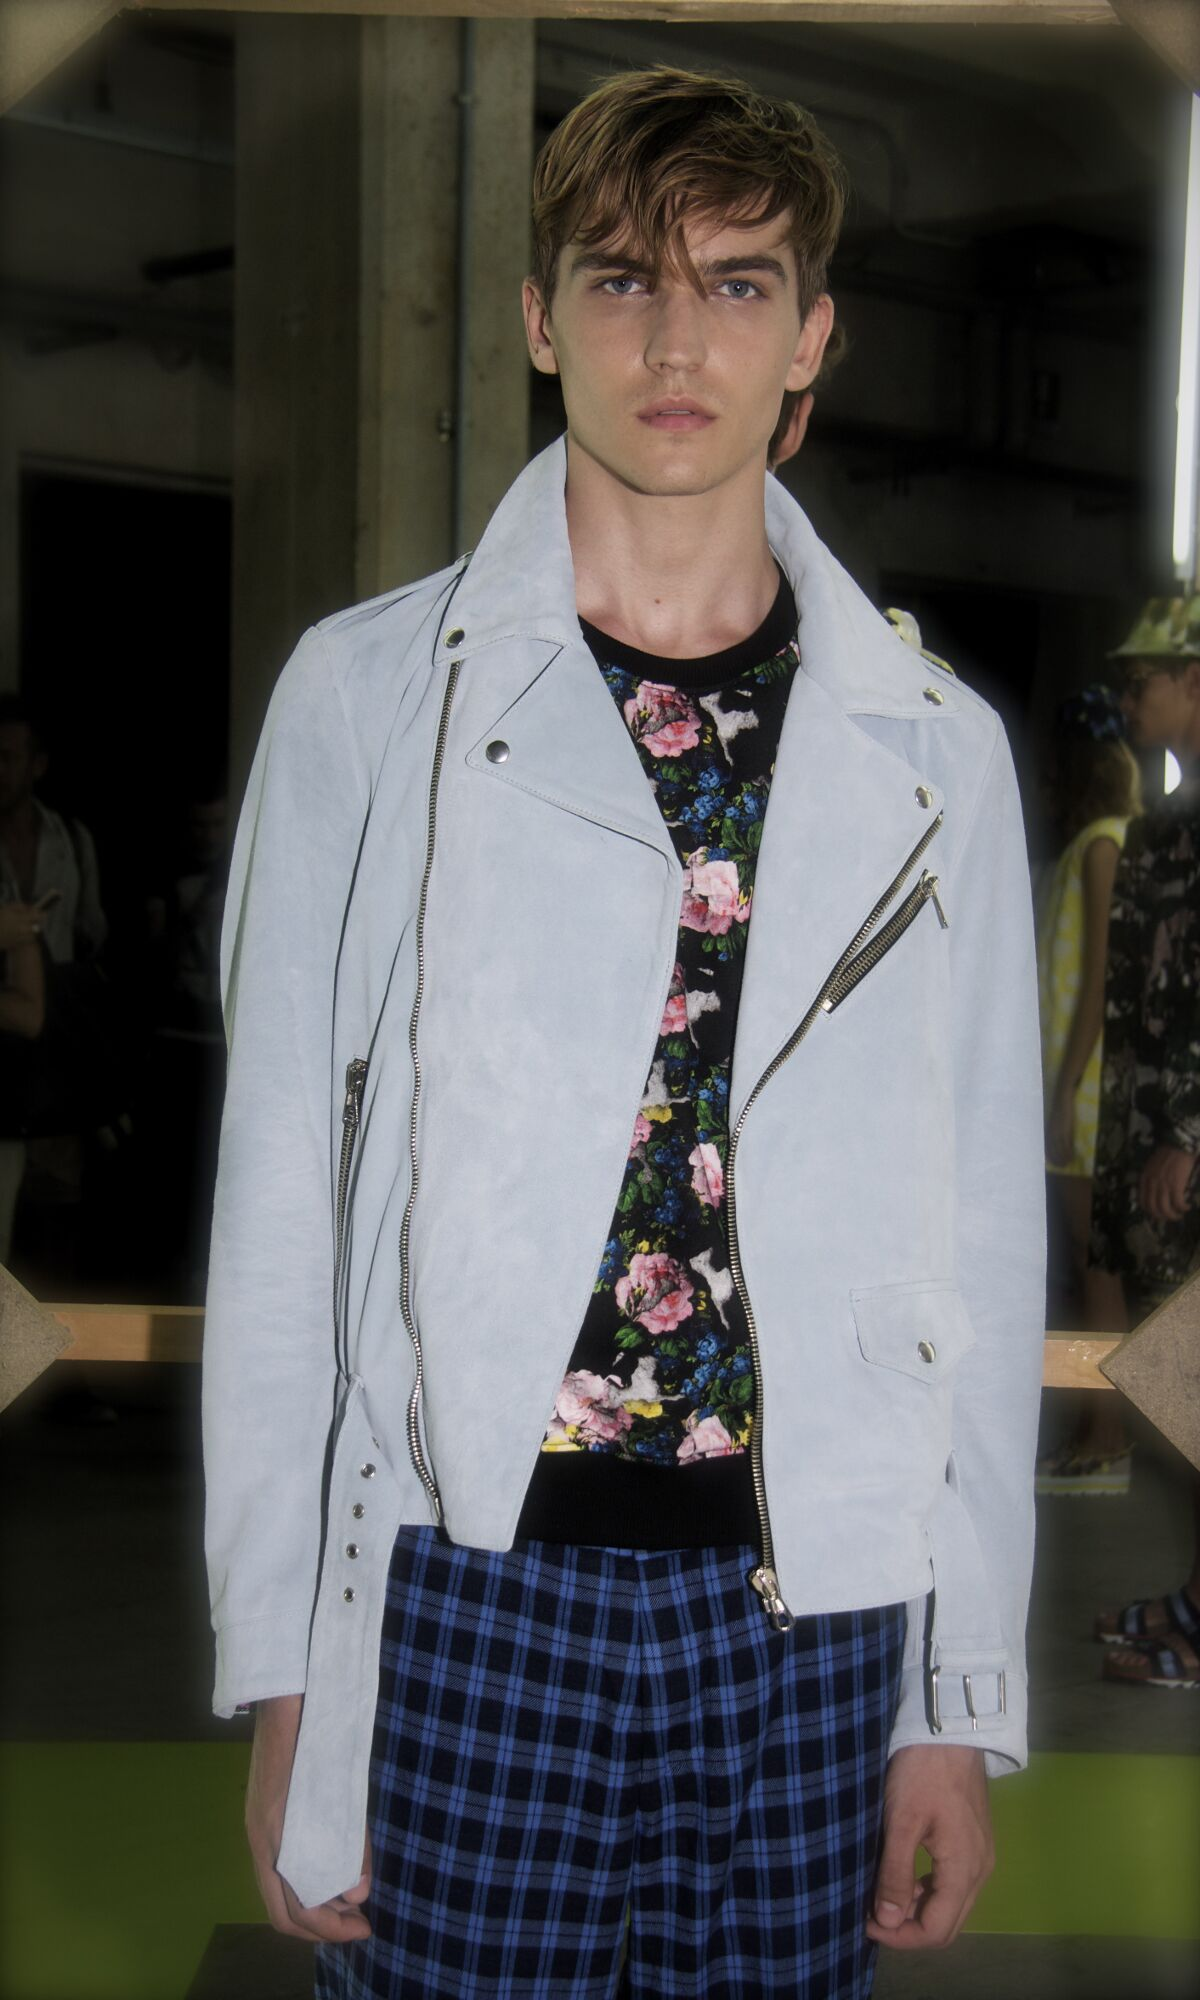 Msgm 2014 Men's Collection Pitti Immagine Uomo